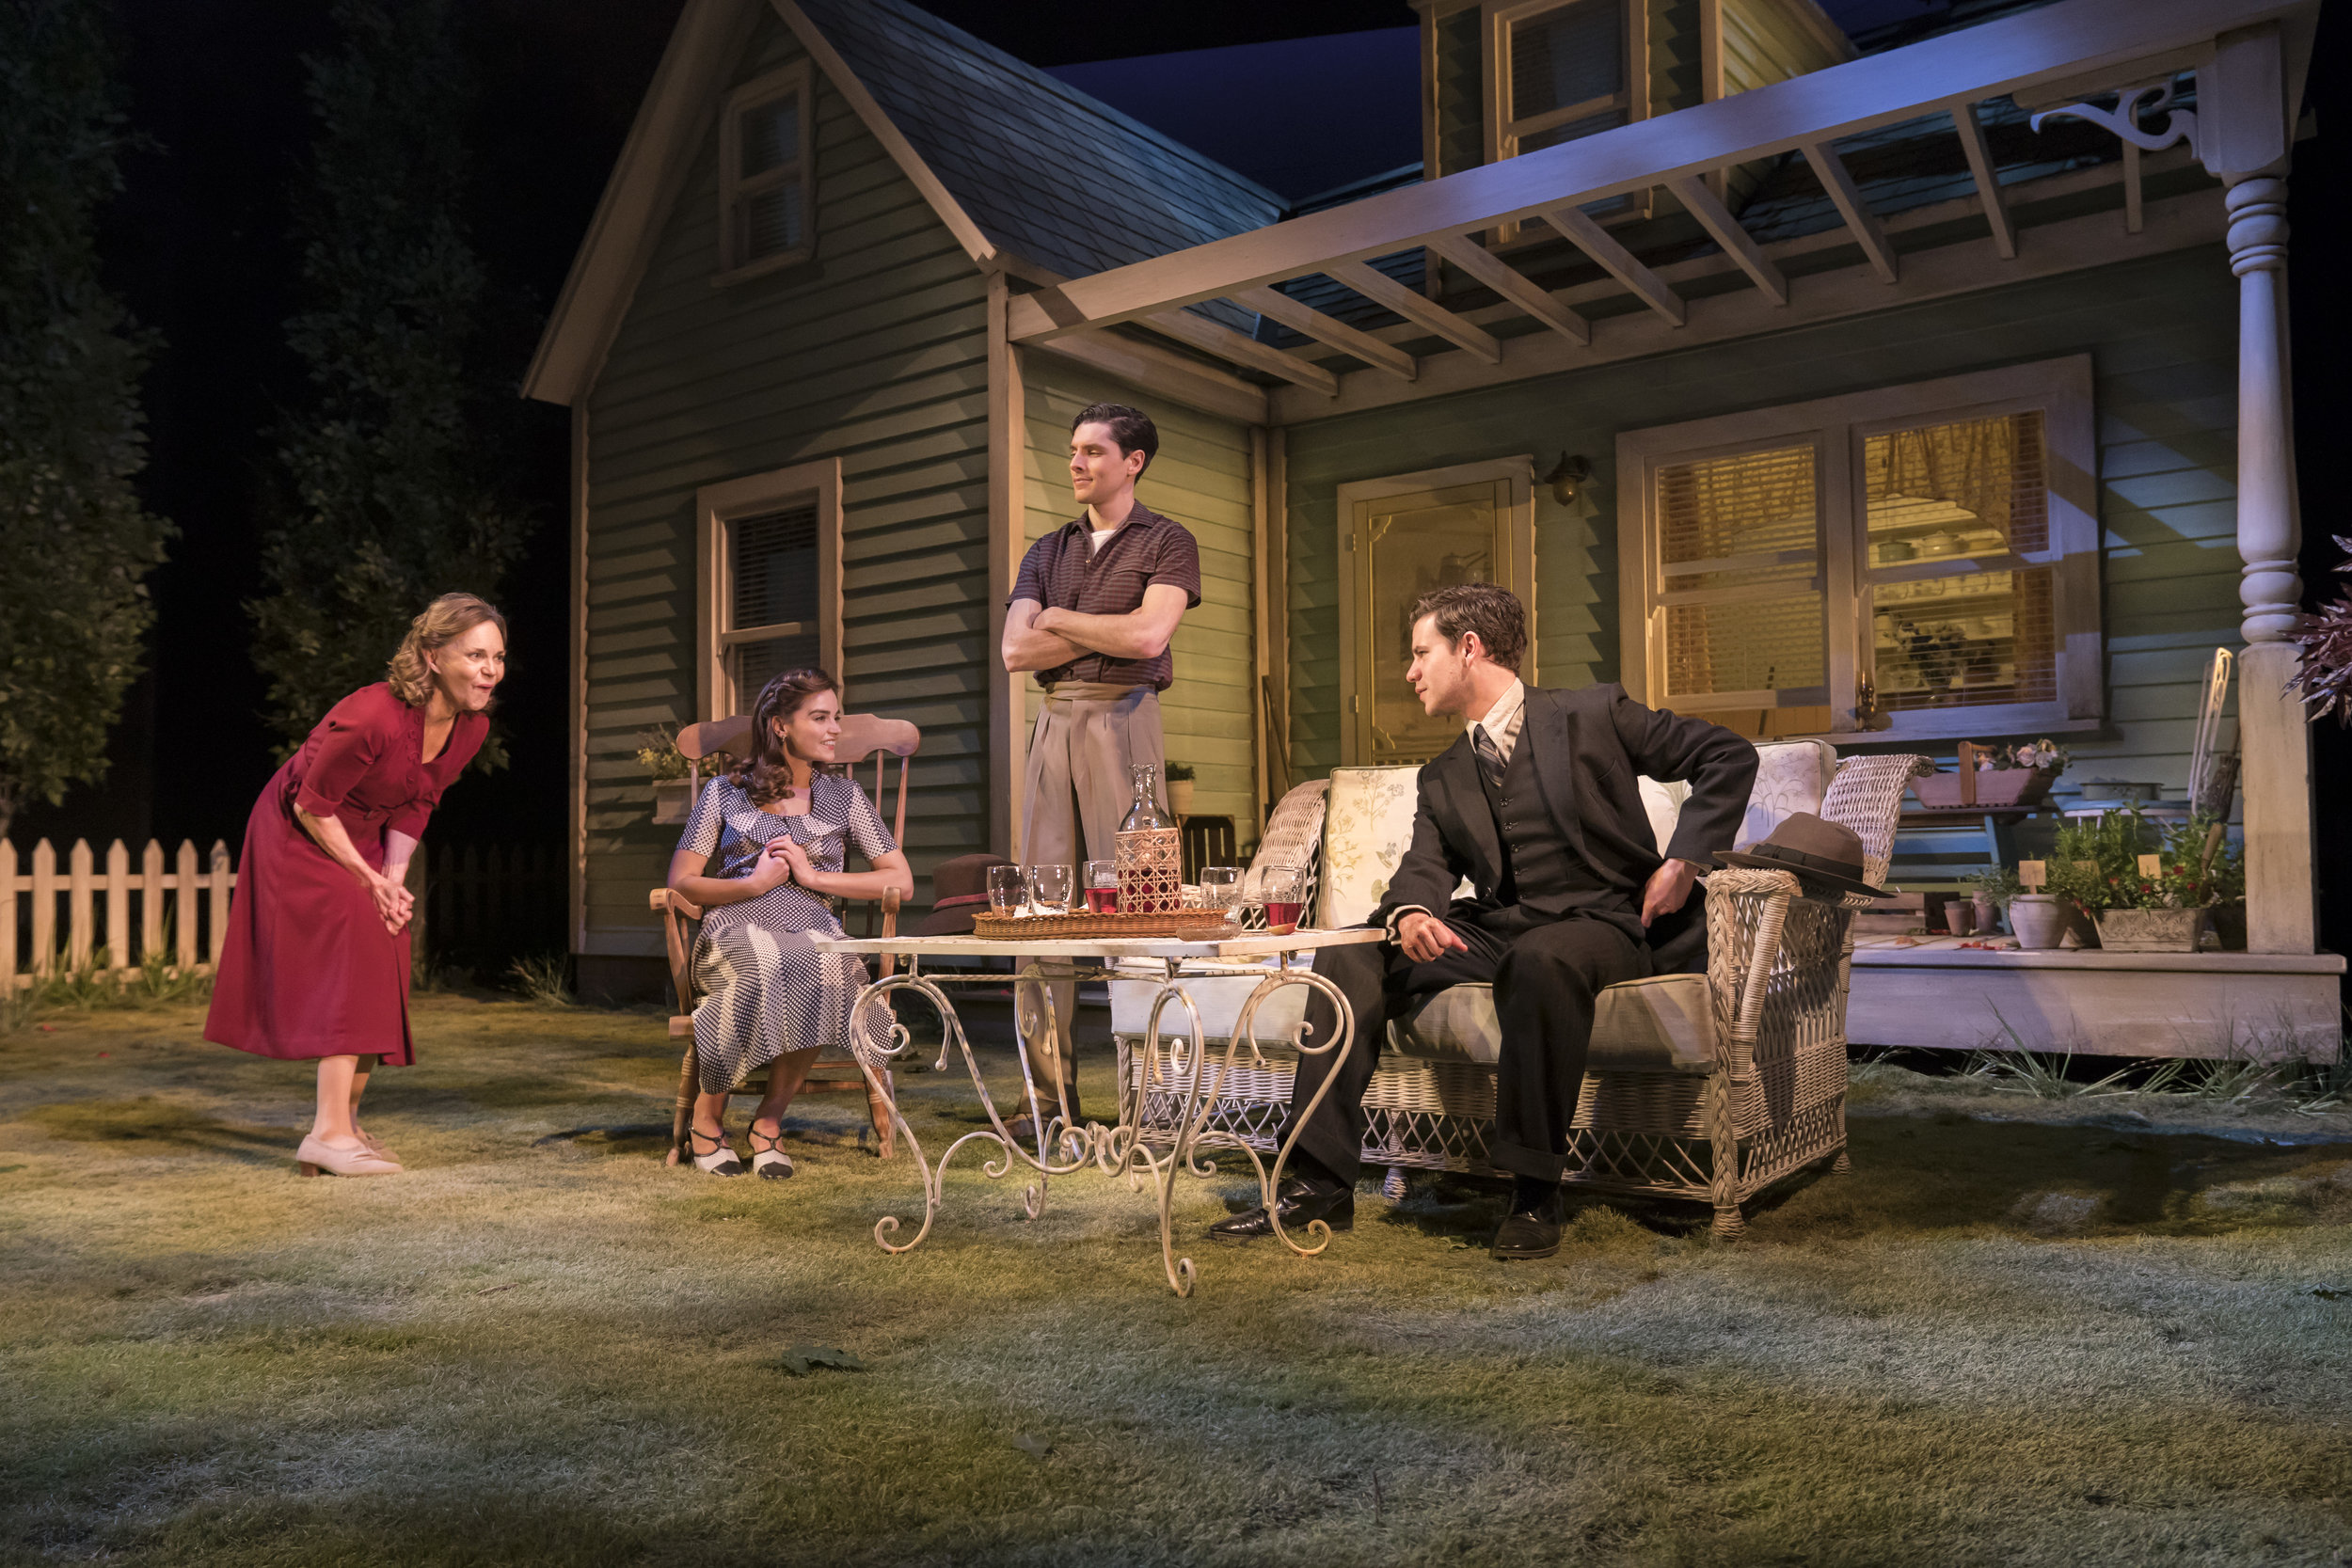 NTL 2019 All My Sons Photography by Johan Persson_06041.jpg